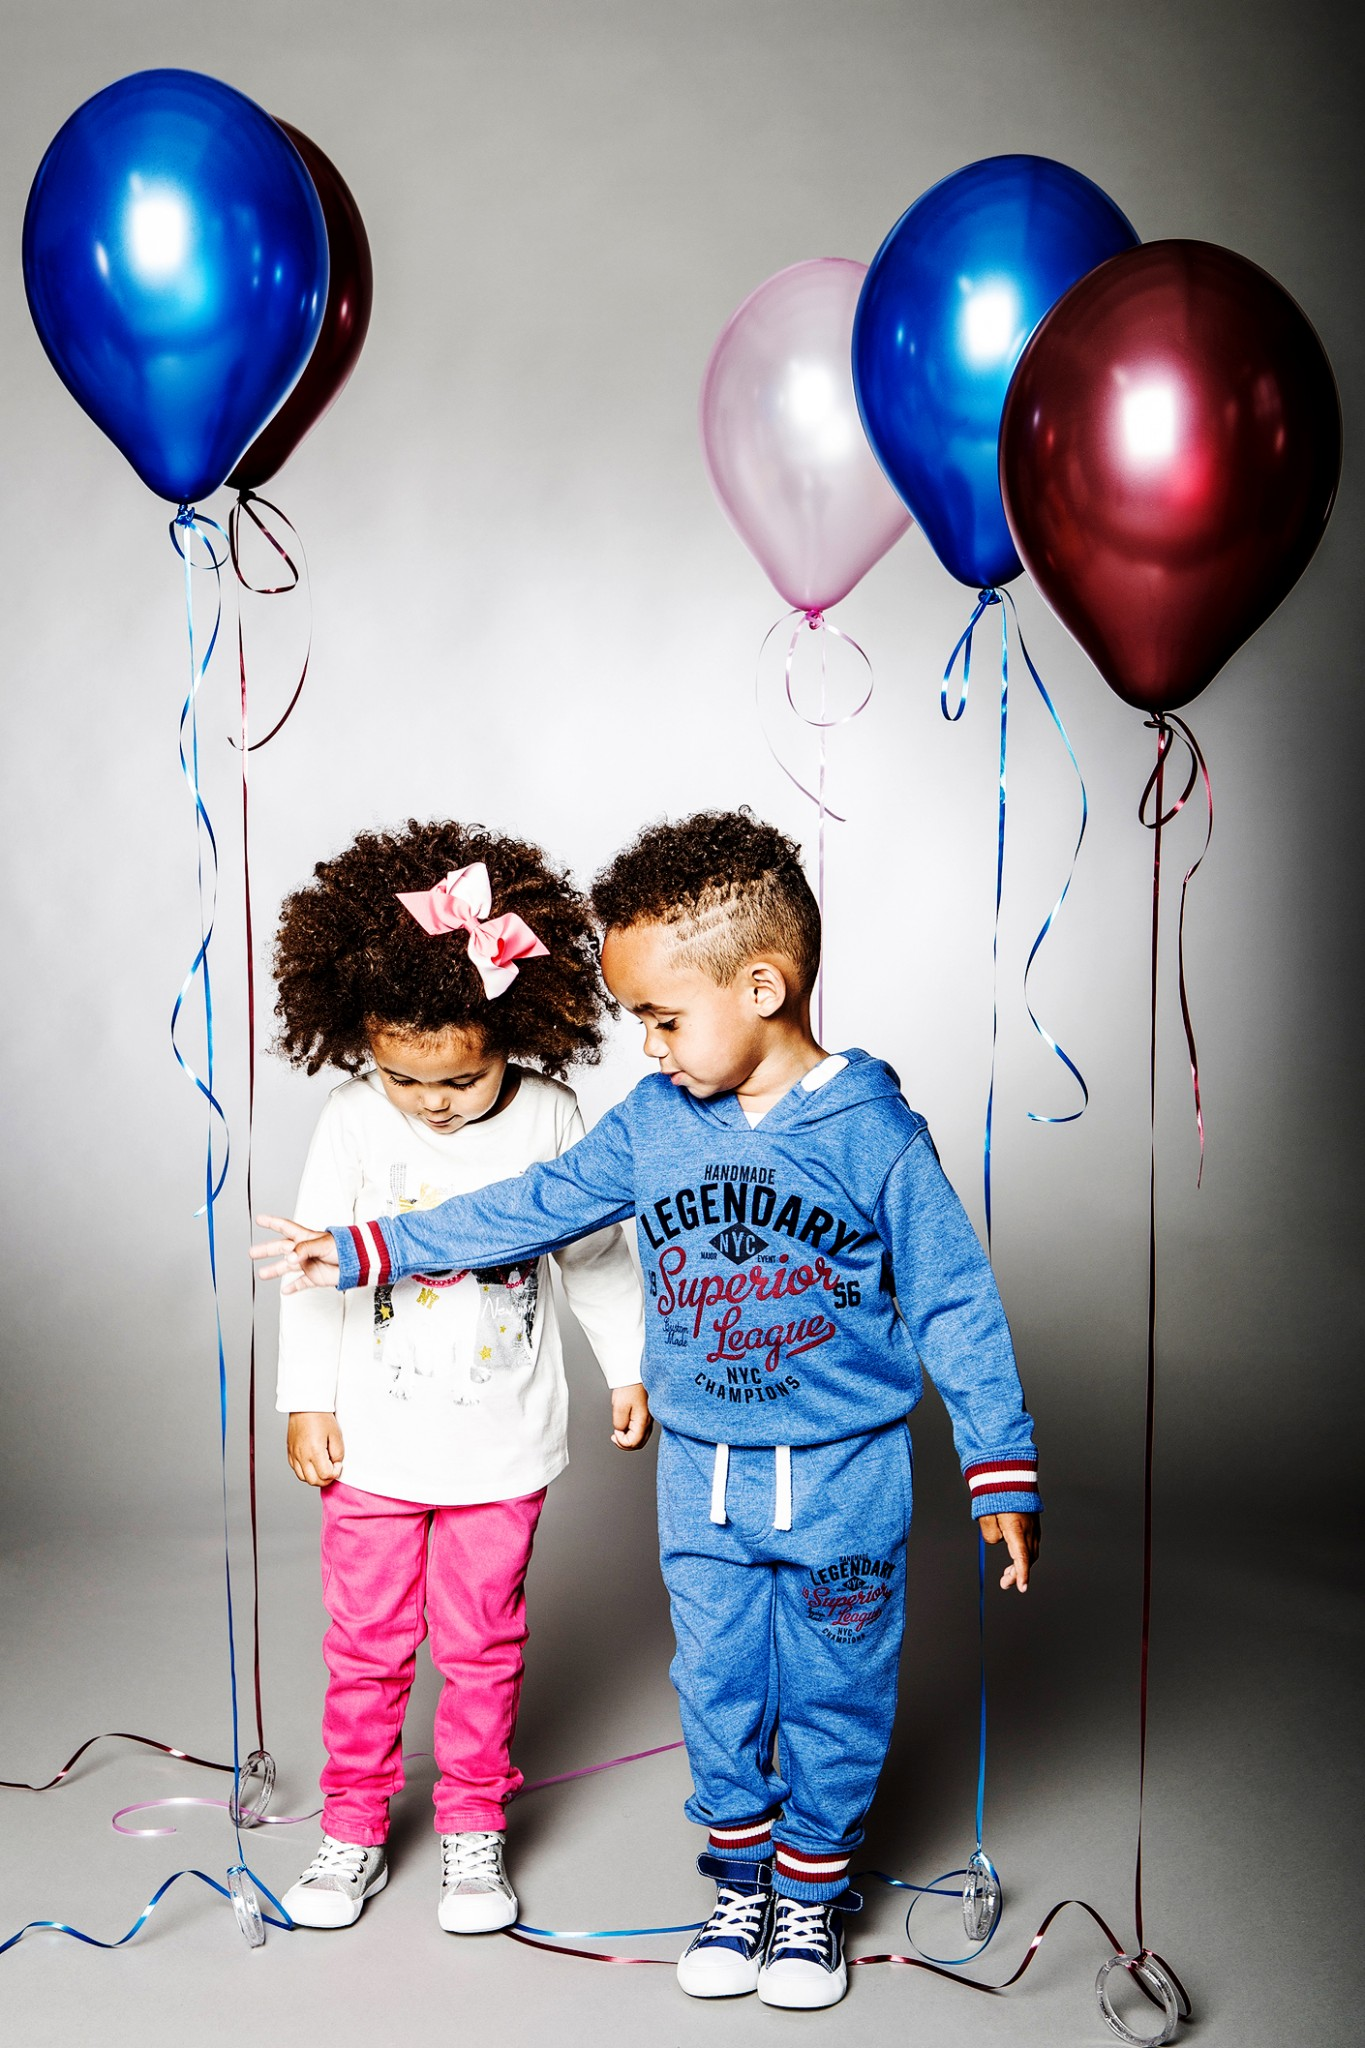 childrens-fashion-and-editorial-photographer-in-manchester